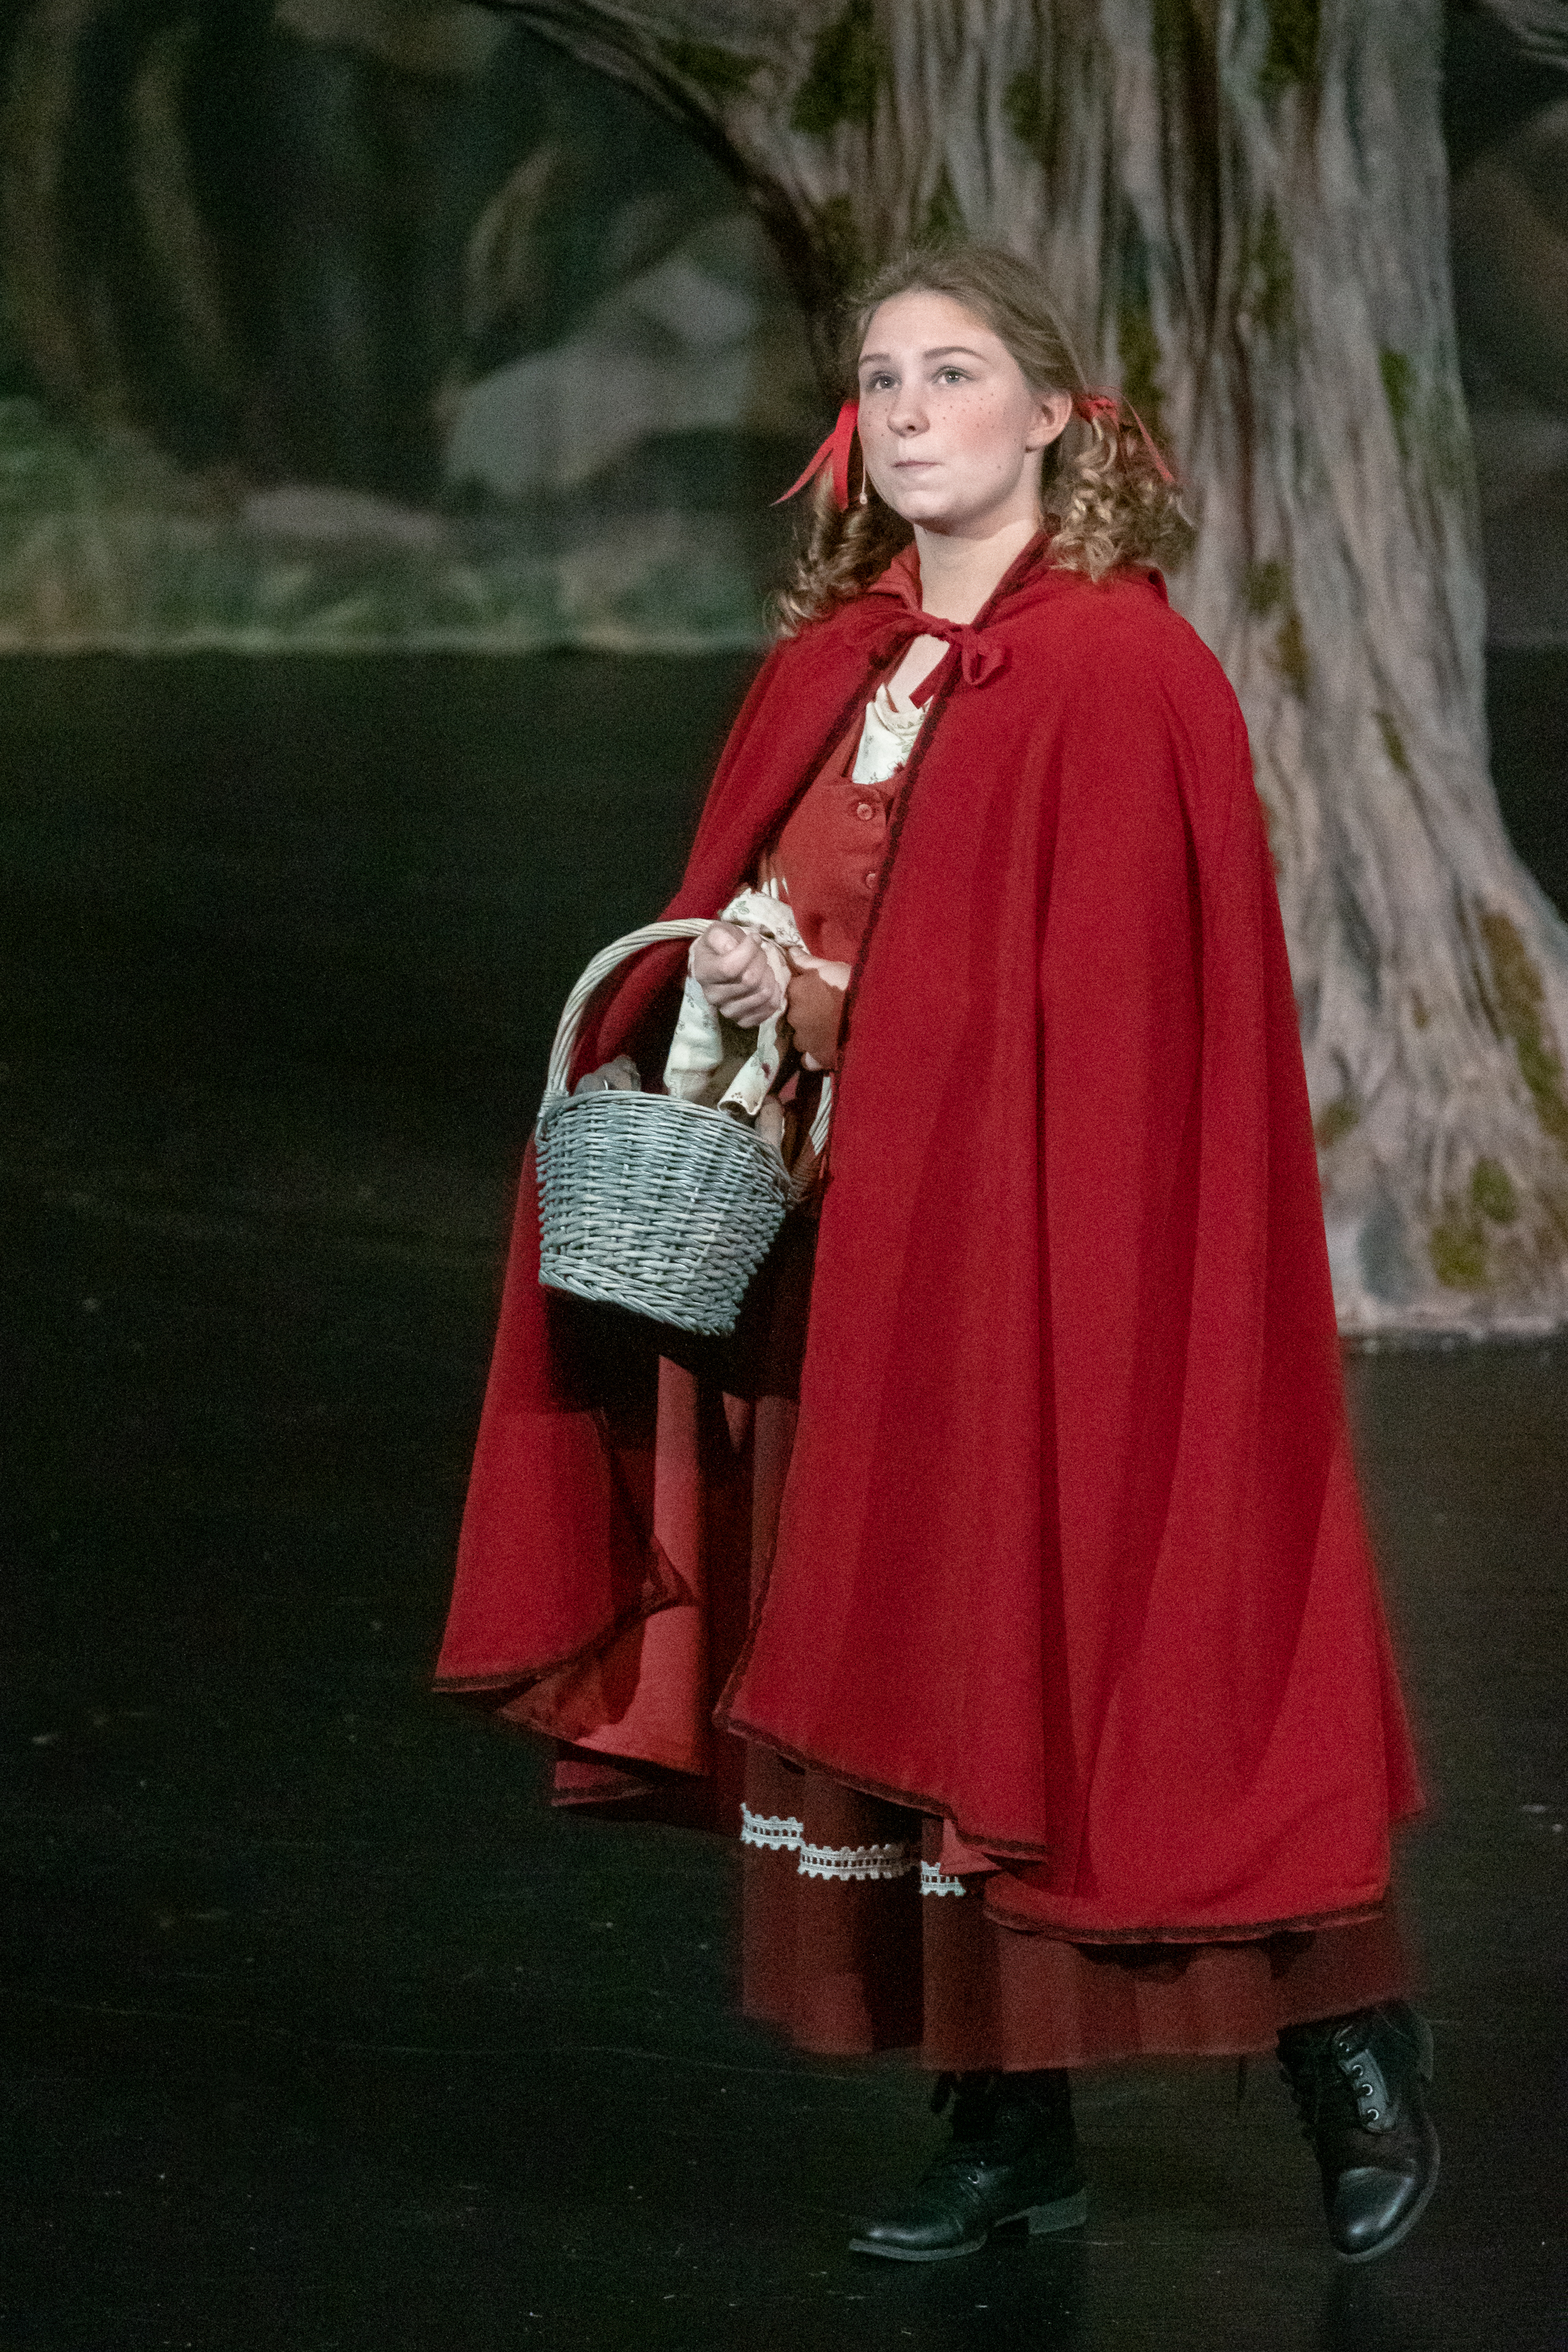 """Little Red Riding Hood: """" I have no fear... Nor no one should... The woods are just trees...  The trees are just wood..."""""""